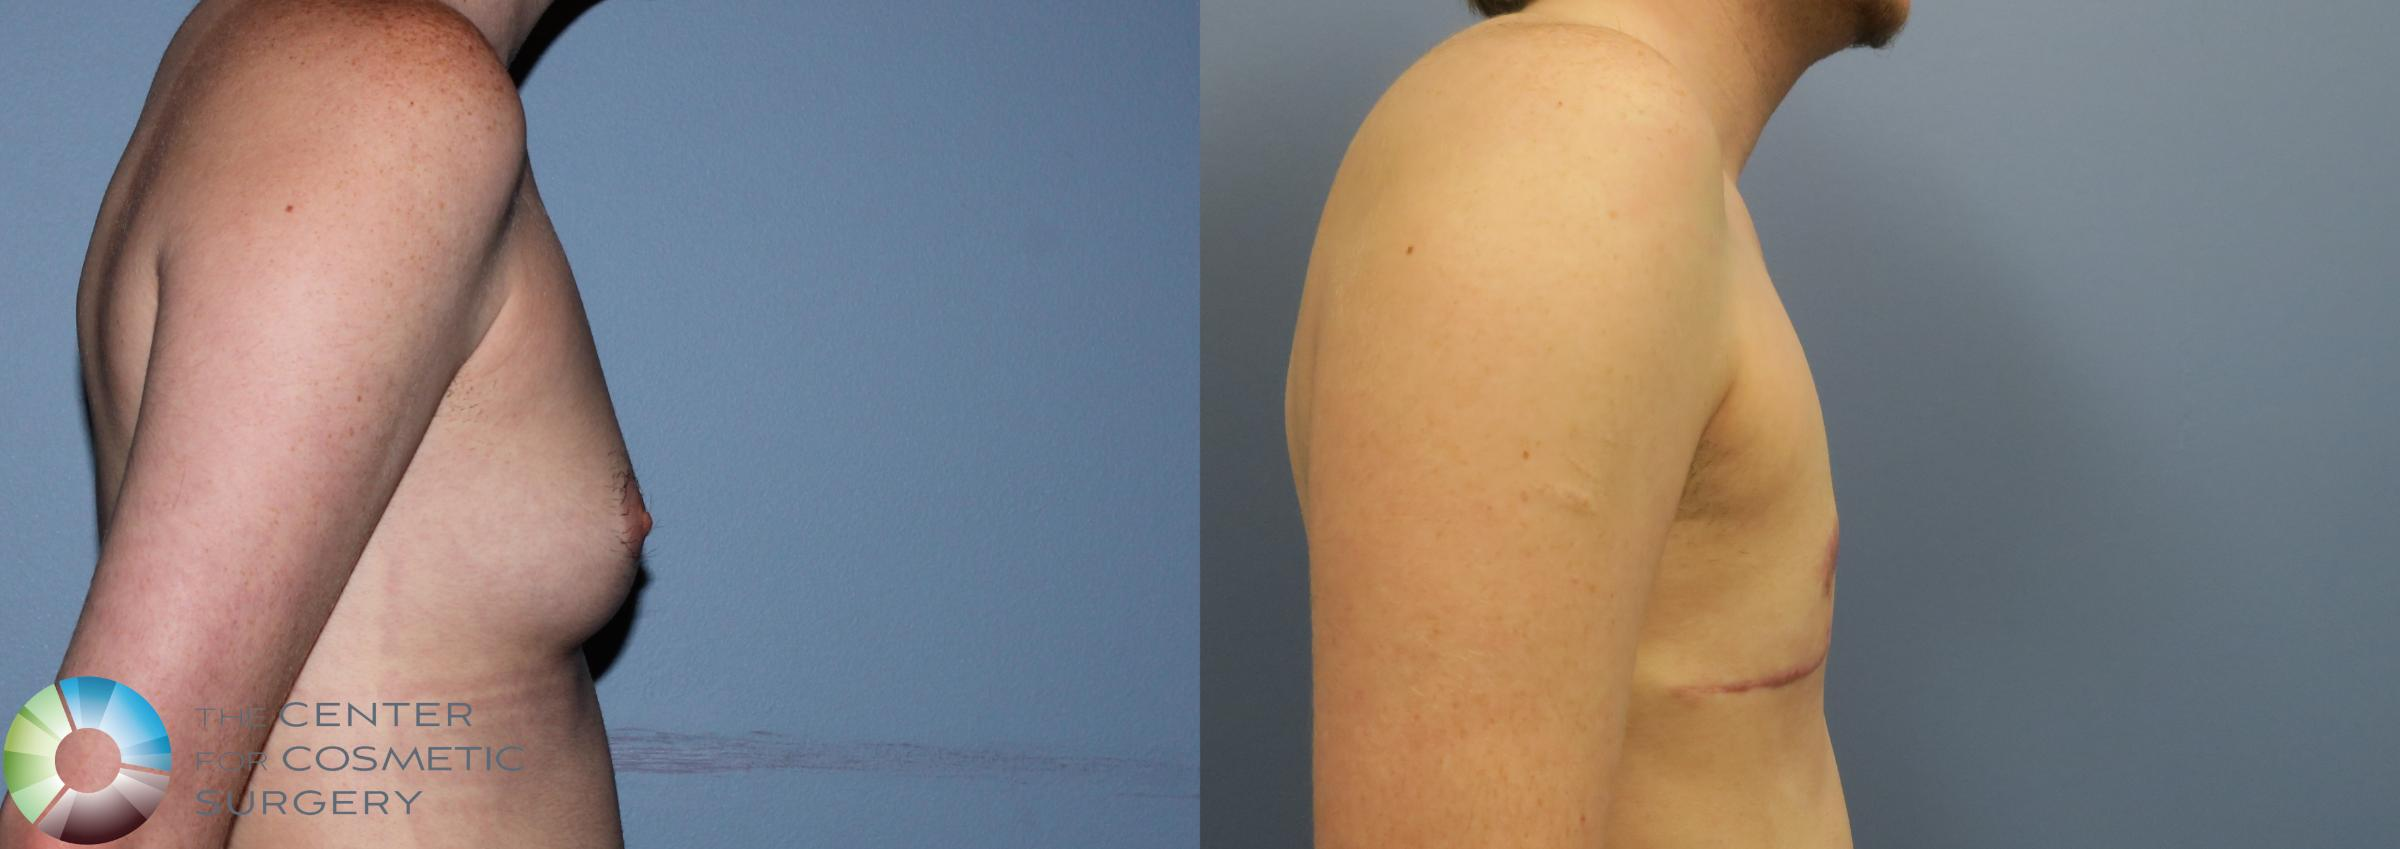 FTM Top Surgery/Chest Masculinization Case 11205 Before & After Right Side | Golden, CO | The Center for Cosmetic Surgery